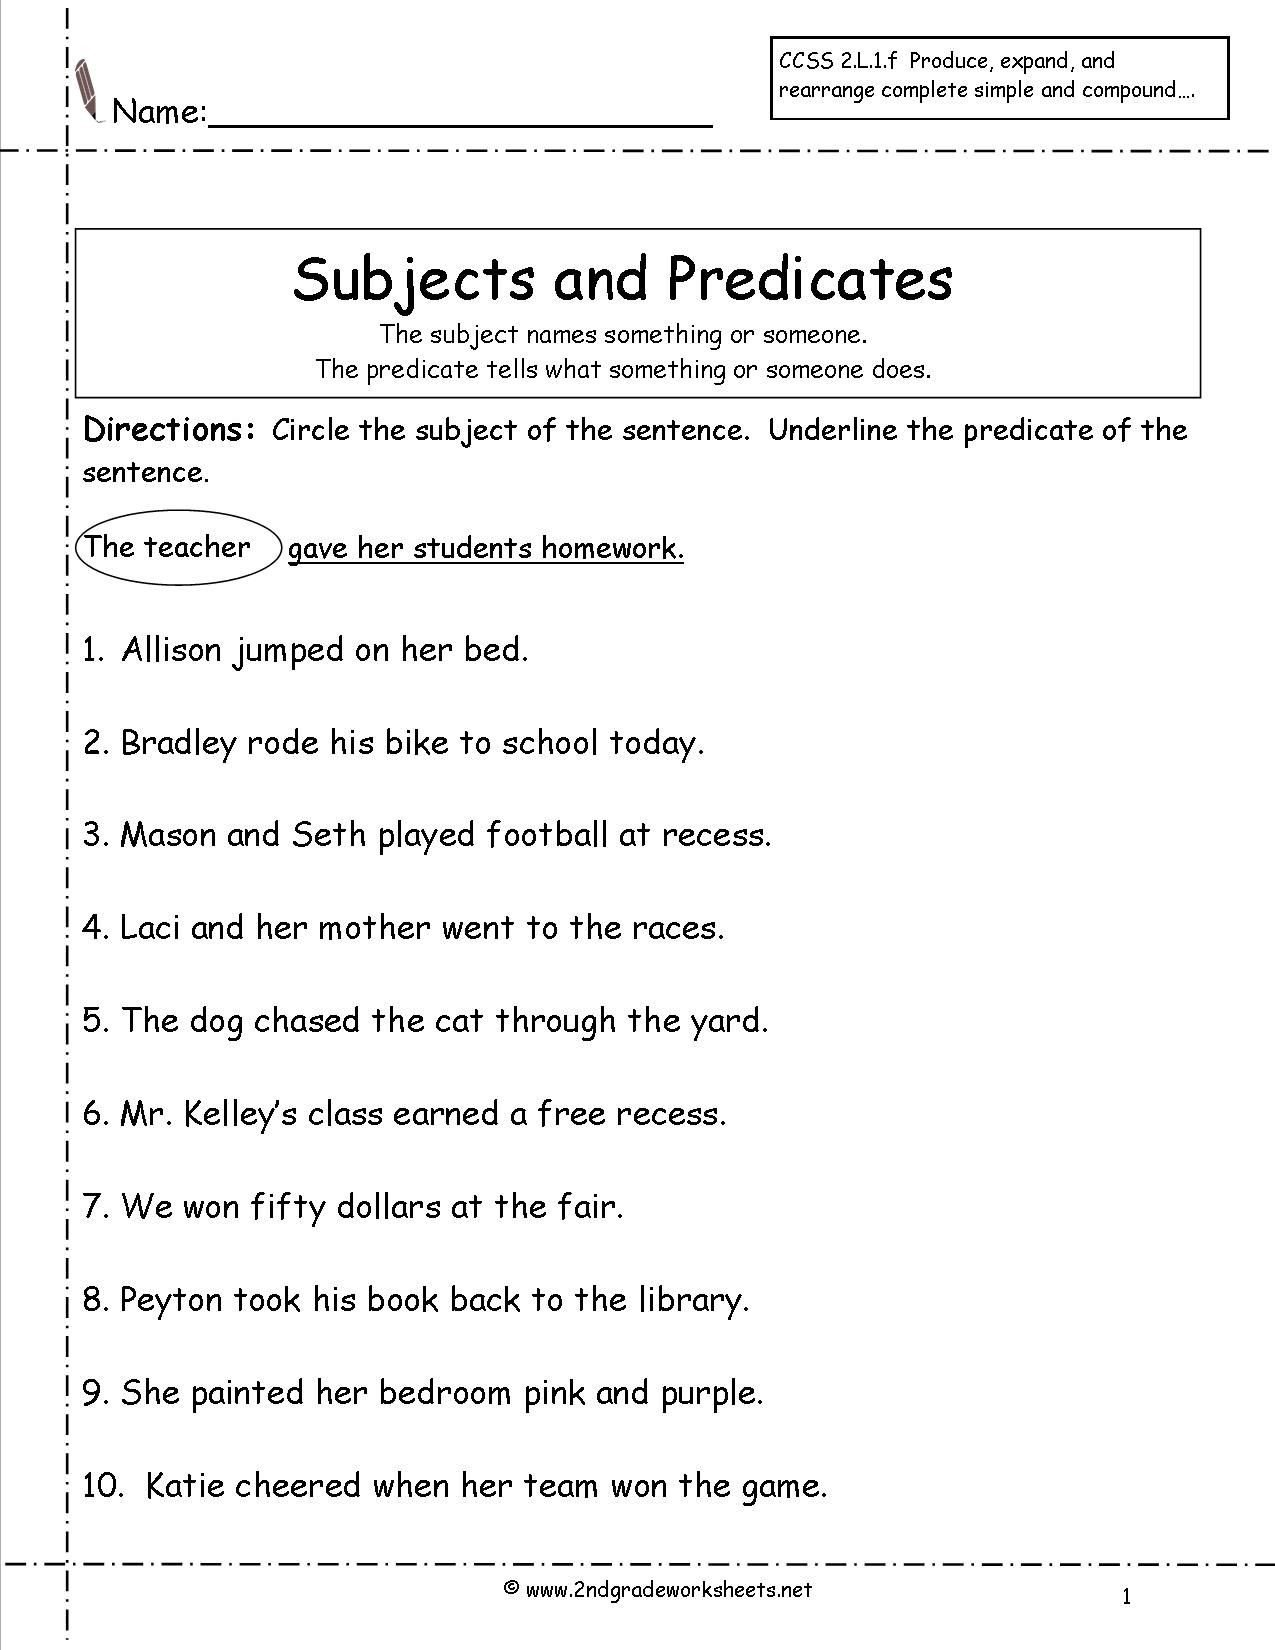 Complete Sentence Worksheet 3rd Grade Subject Predicate Worksheets 2nd Grade Google Search